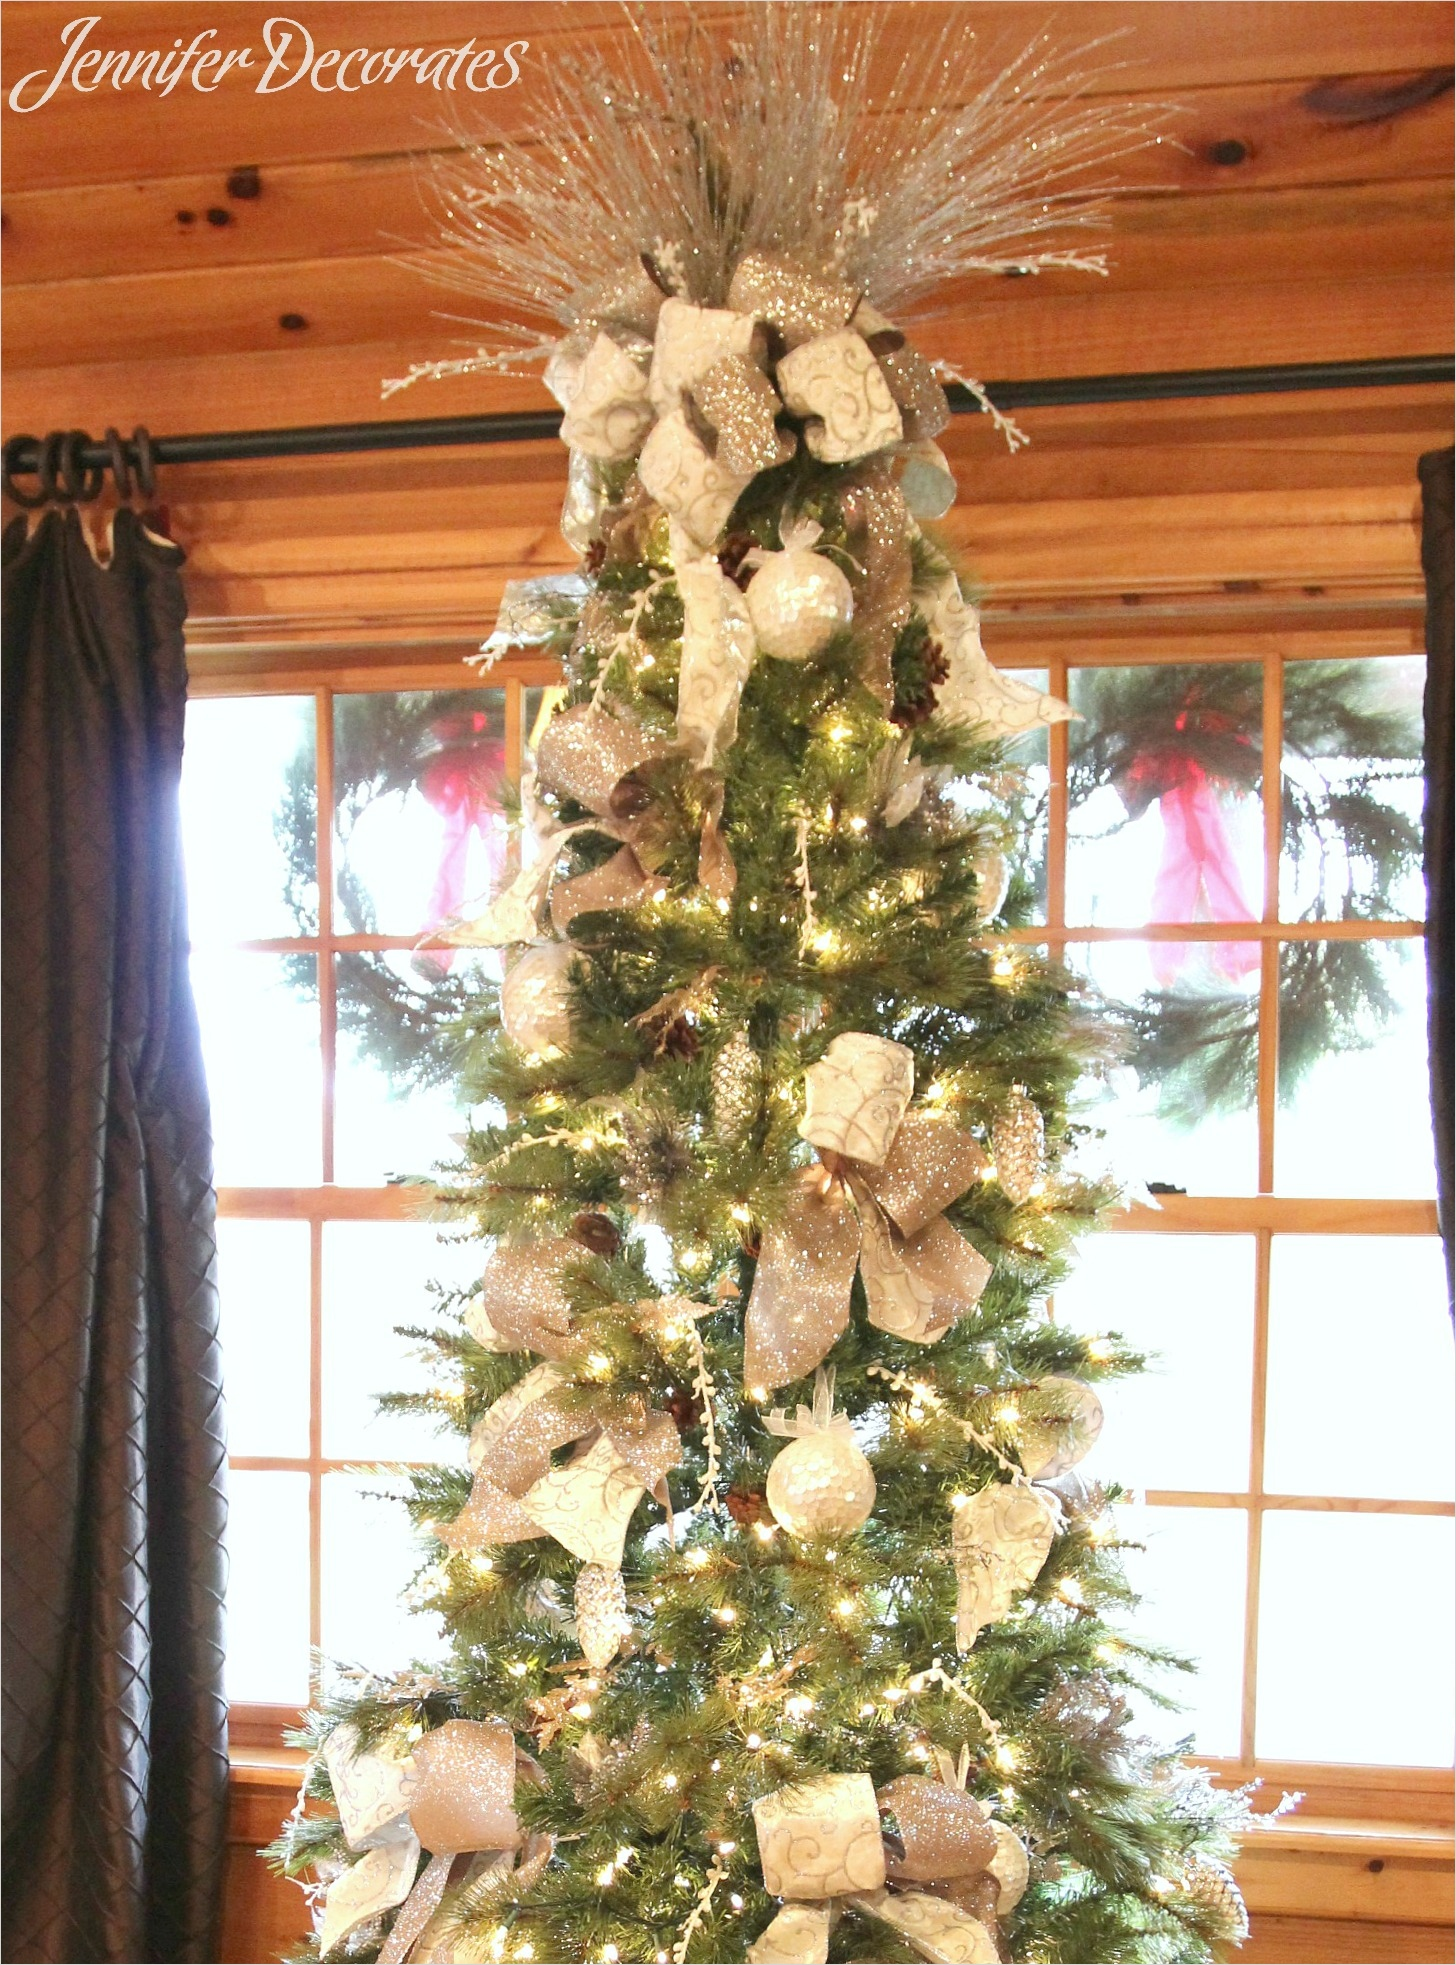 41 Amazing Country Christmas Decorating Ideas 55 Country Christmas Decorating Ideas Jennifer Decorates 4